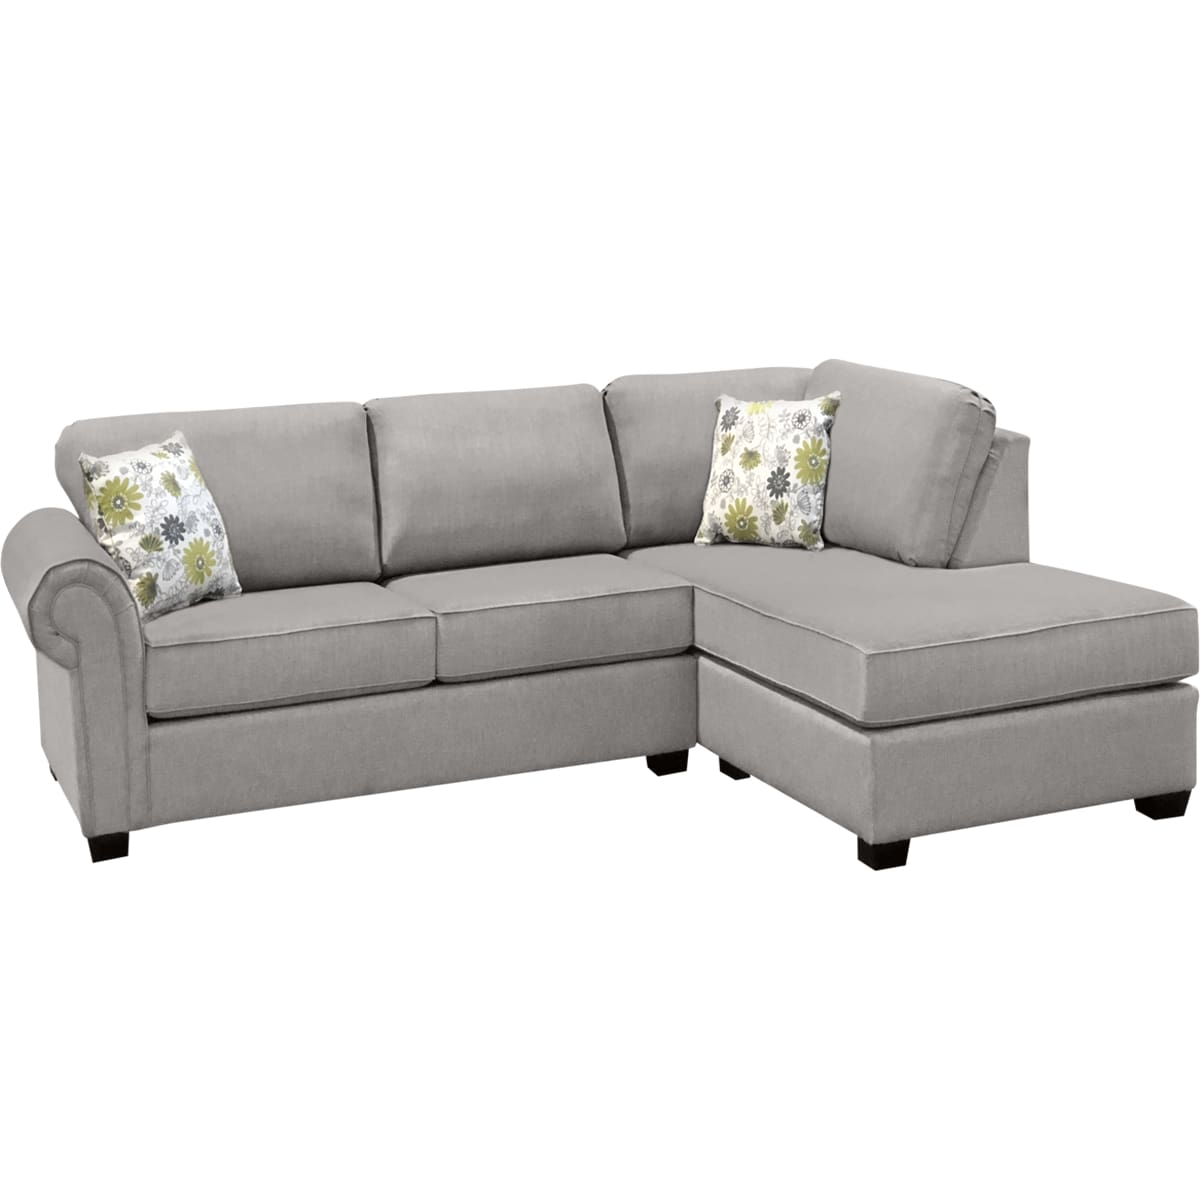 Willow Sectional - Sectional